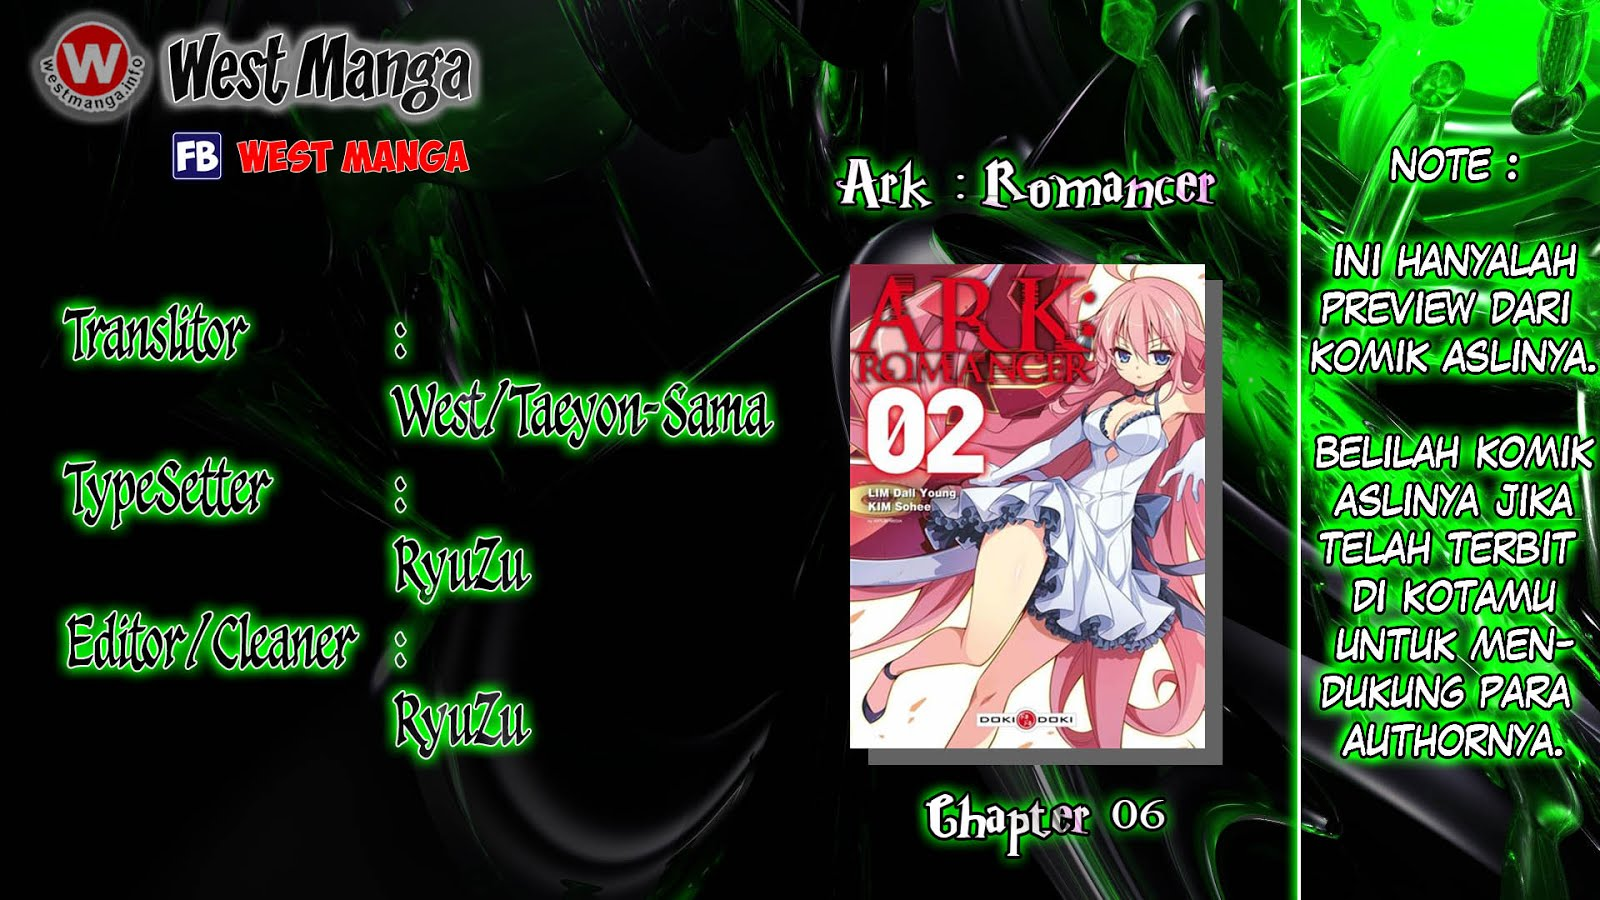 Baca Komik ARK: Romancer Chapter 6 Komik Station